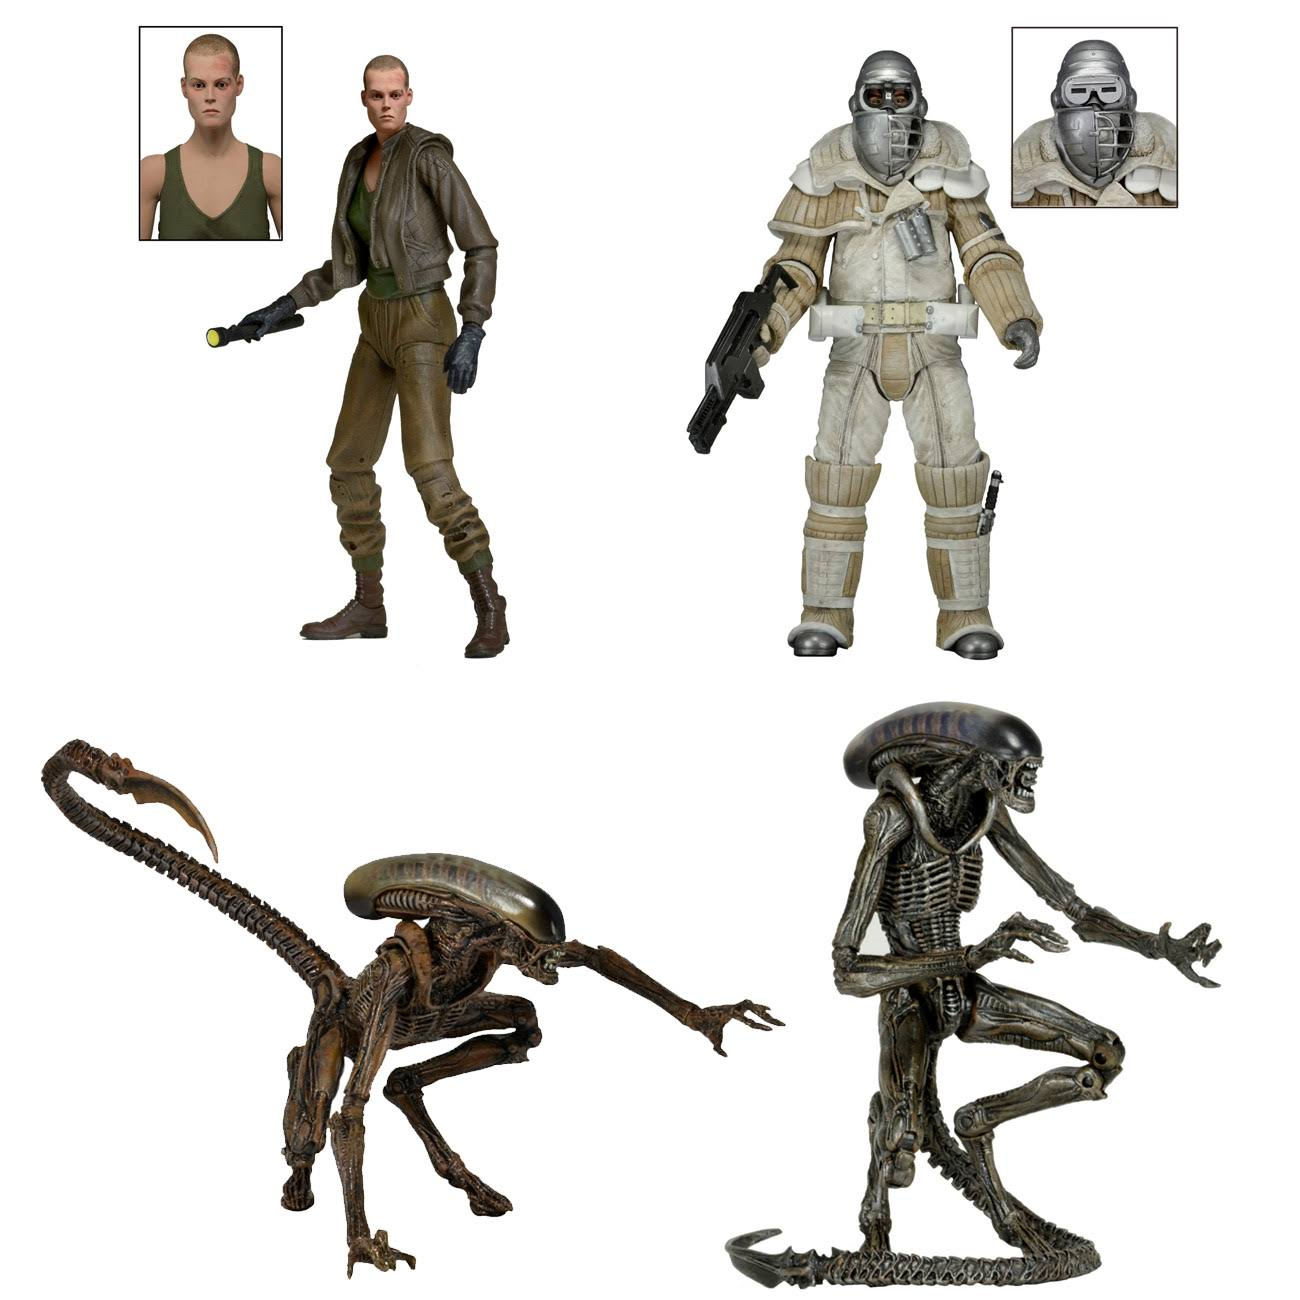 Neca Aliens Weyland Yutani Commando Alien 3 Series 8 Action Figure Set - Set of 4